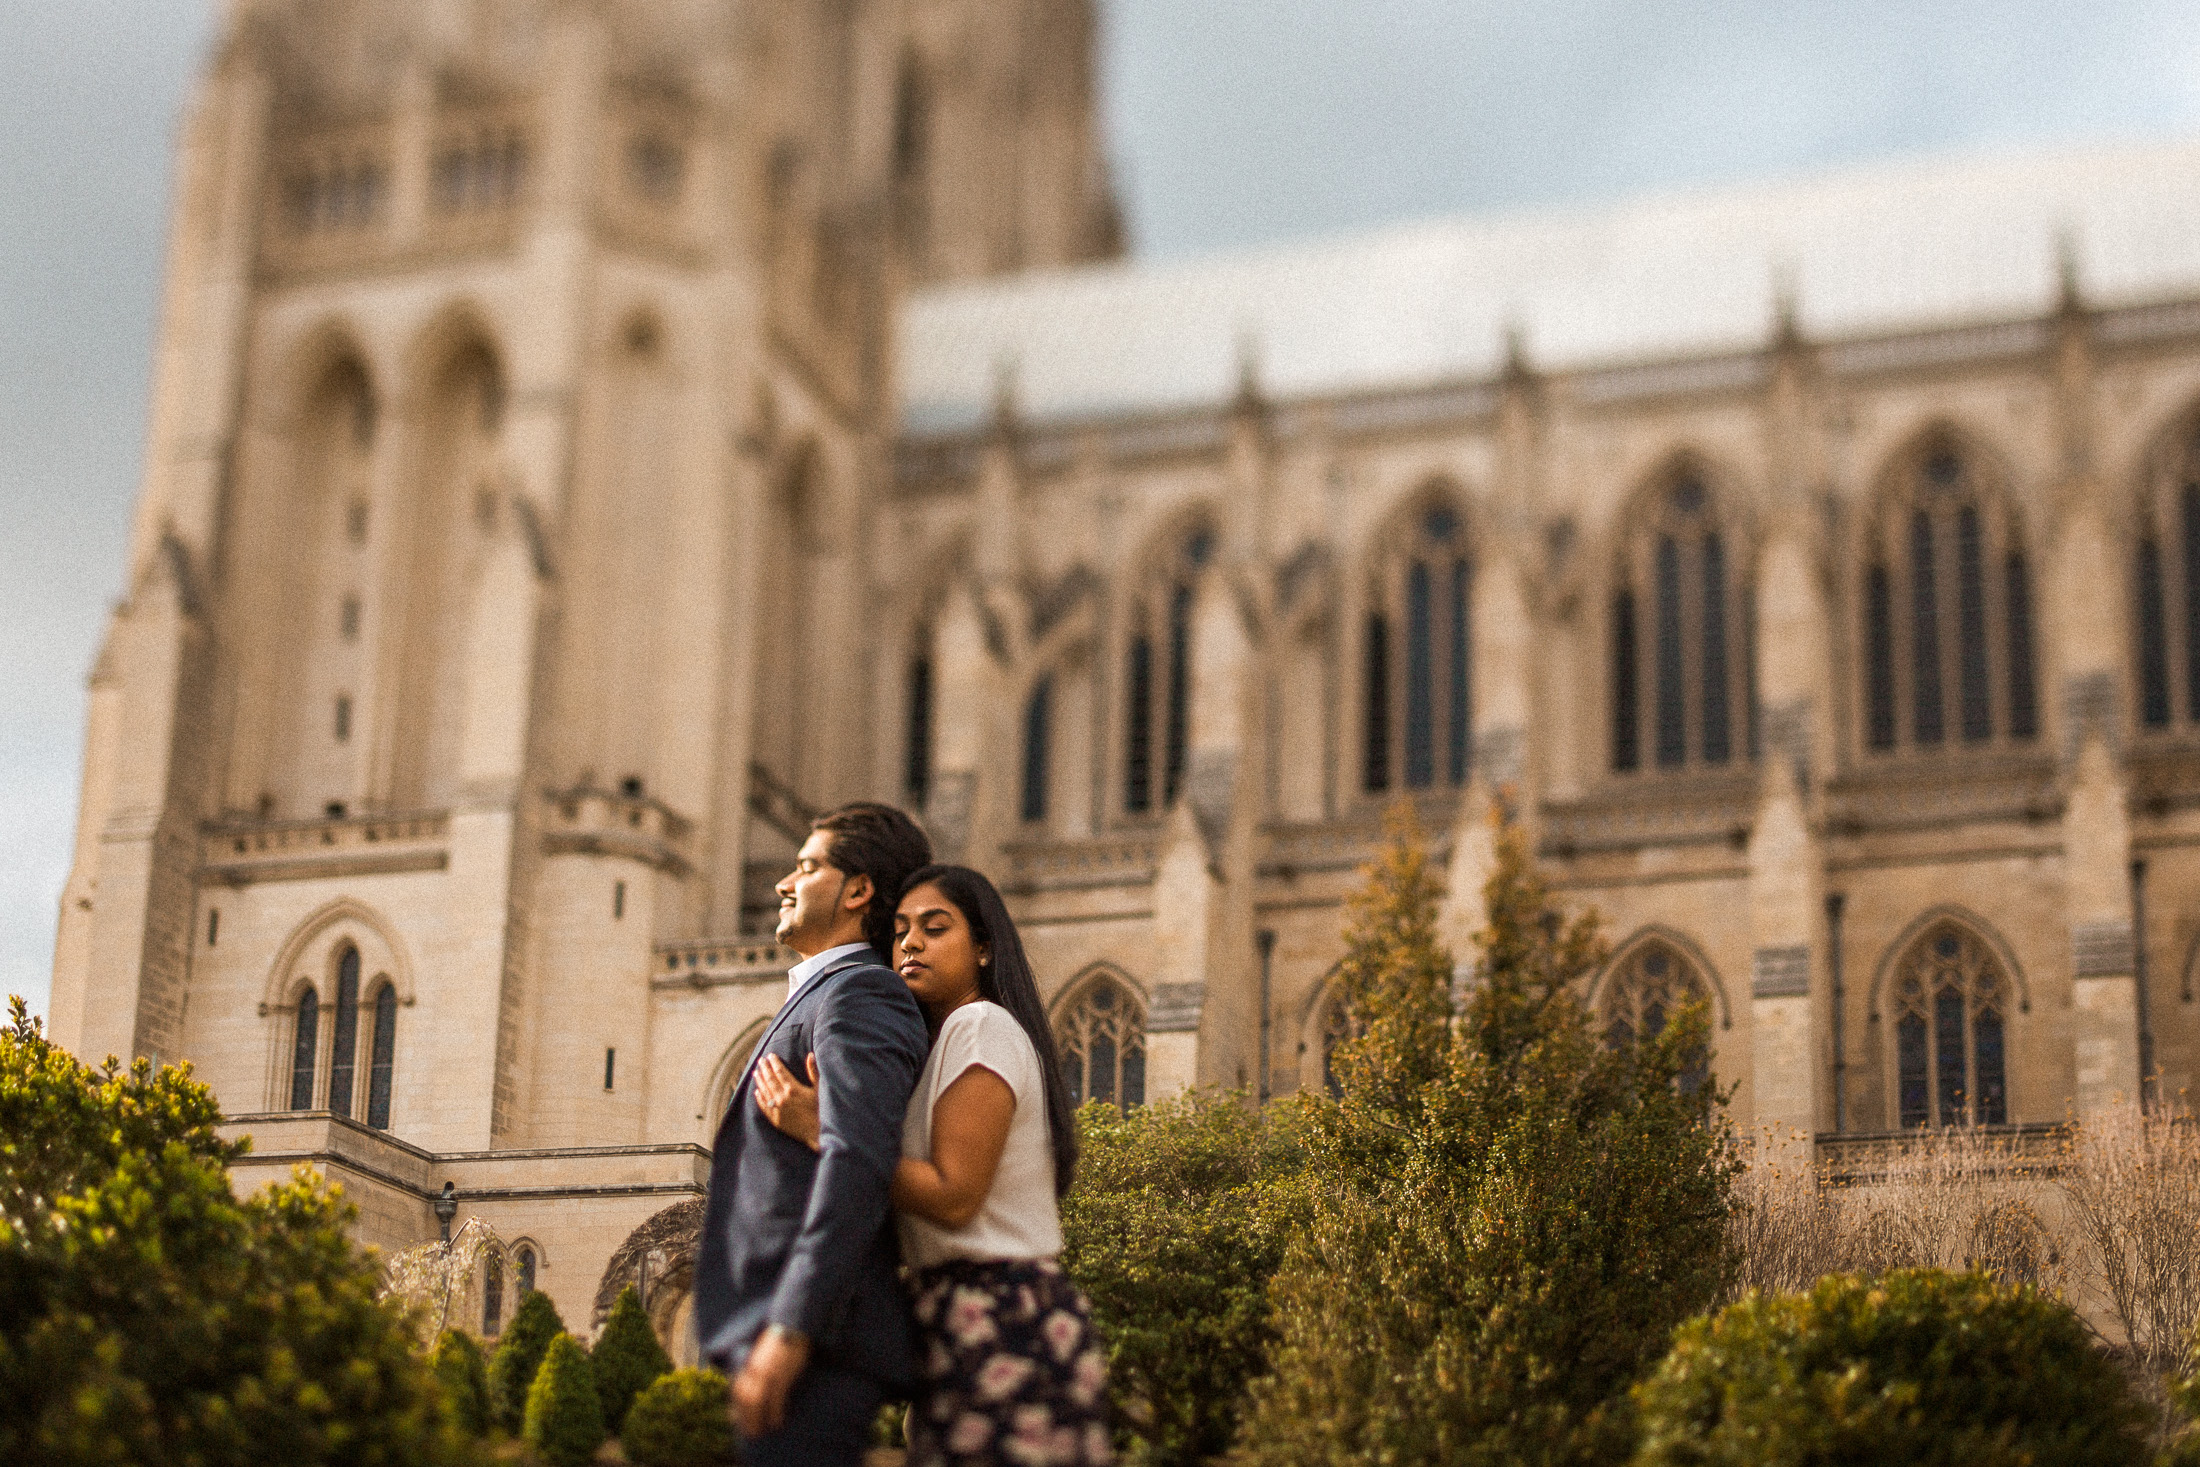 The marriage proposal of Moin Syed and Nicole Thamby at the Bishop's Garden at the National Cathedral in Washington, DC March 28, 2017.